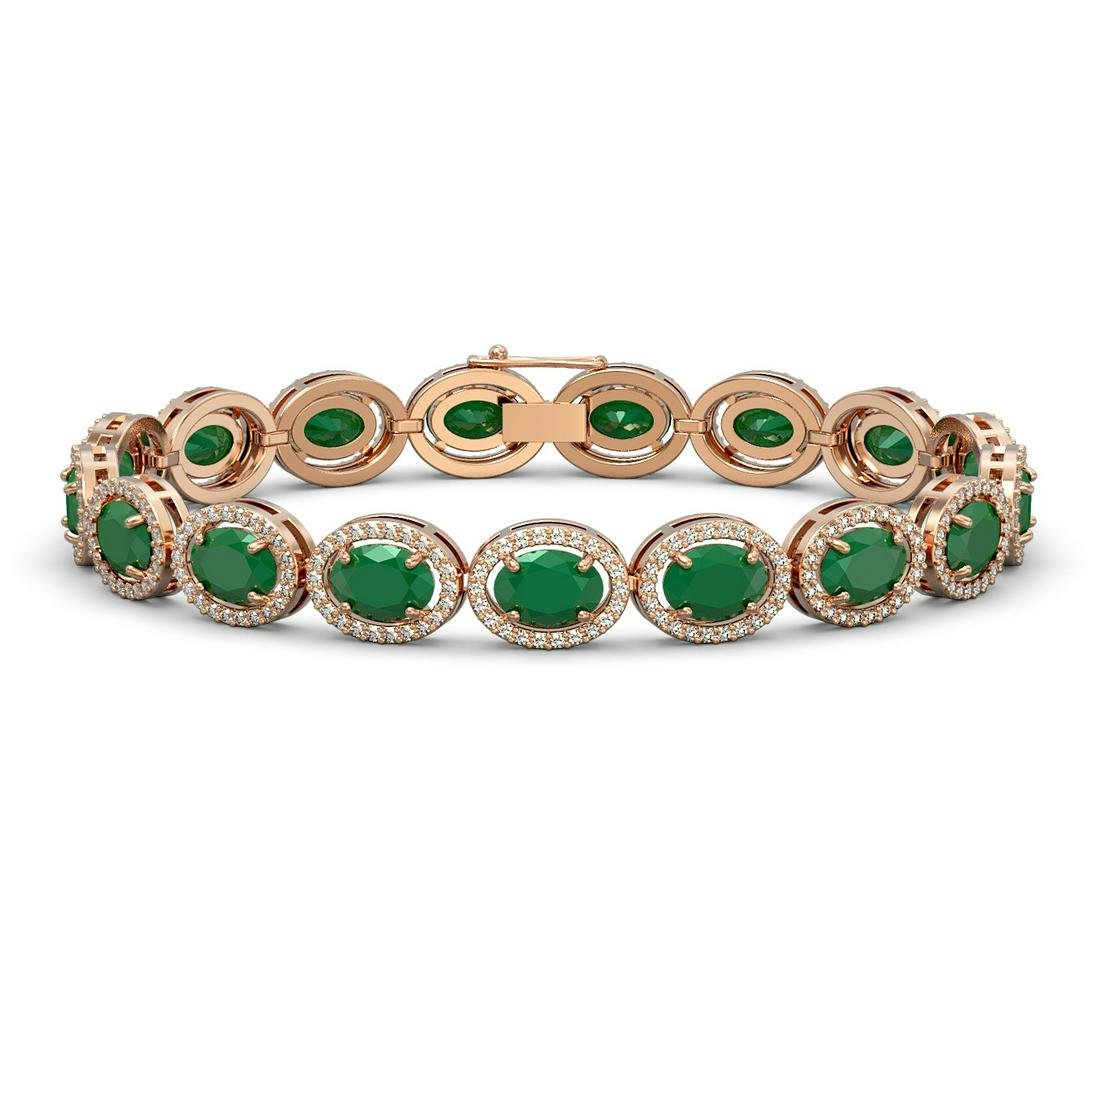 22.89 ctw Emerald & Diamond Halo Bracelet 10K Rose Gold